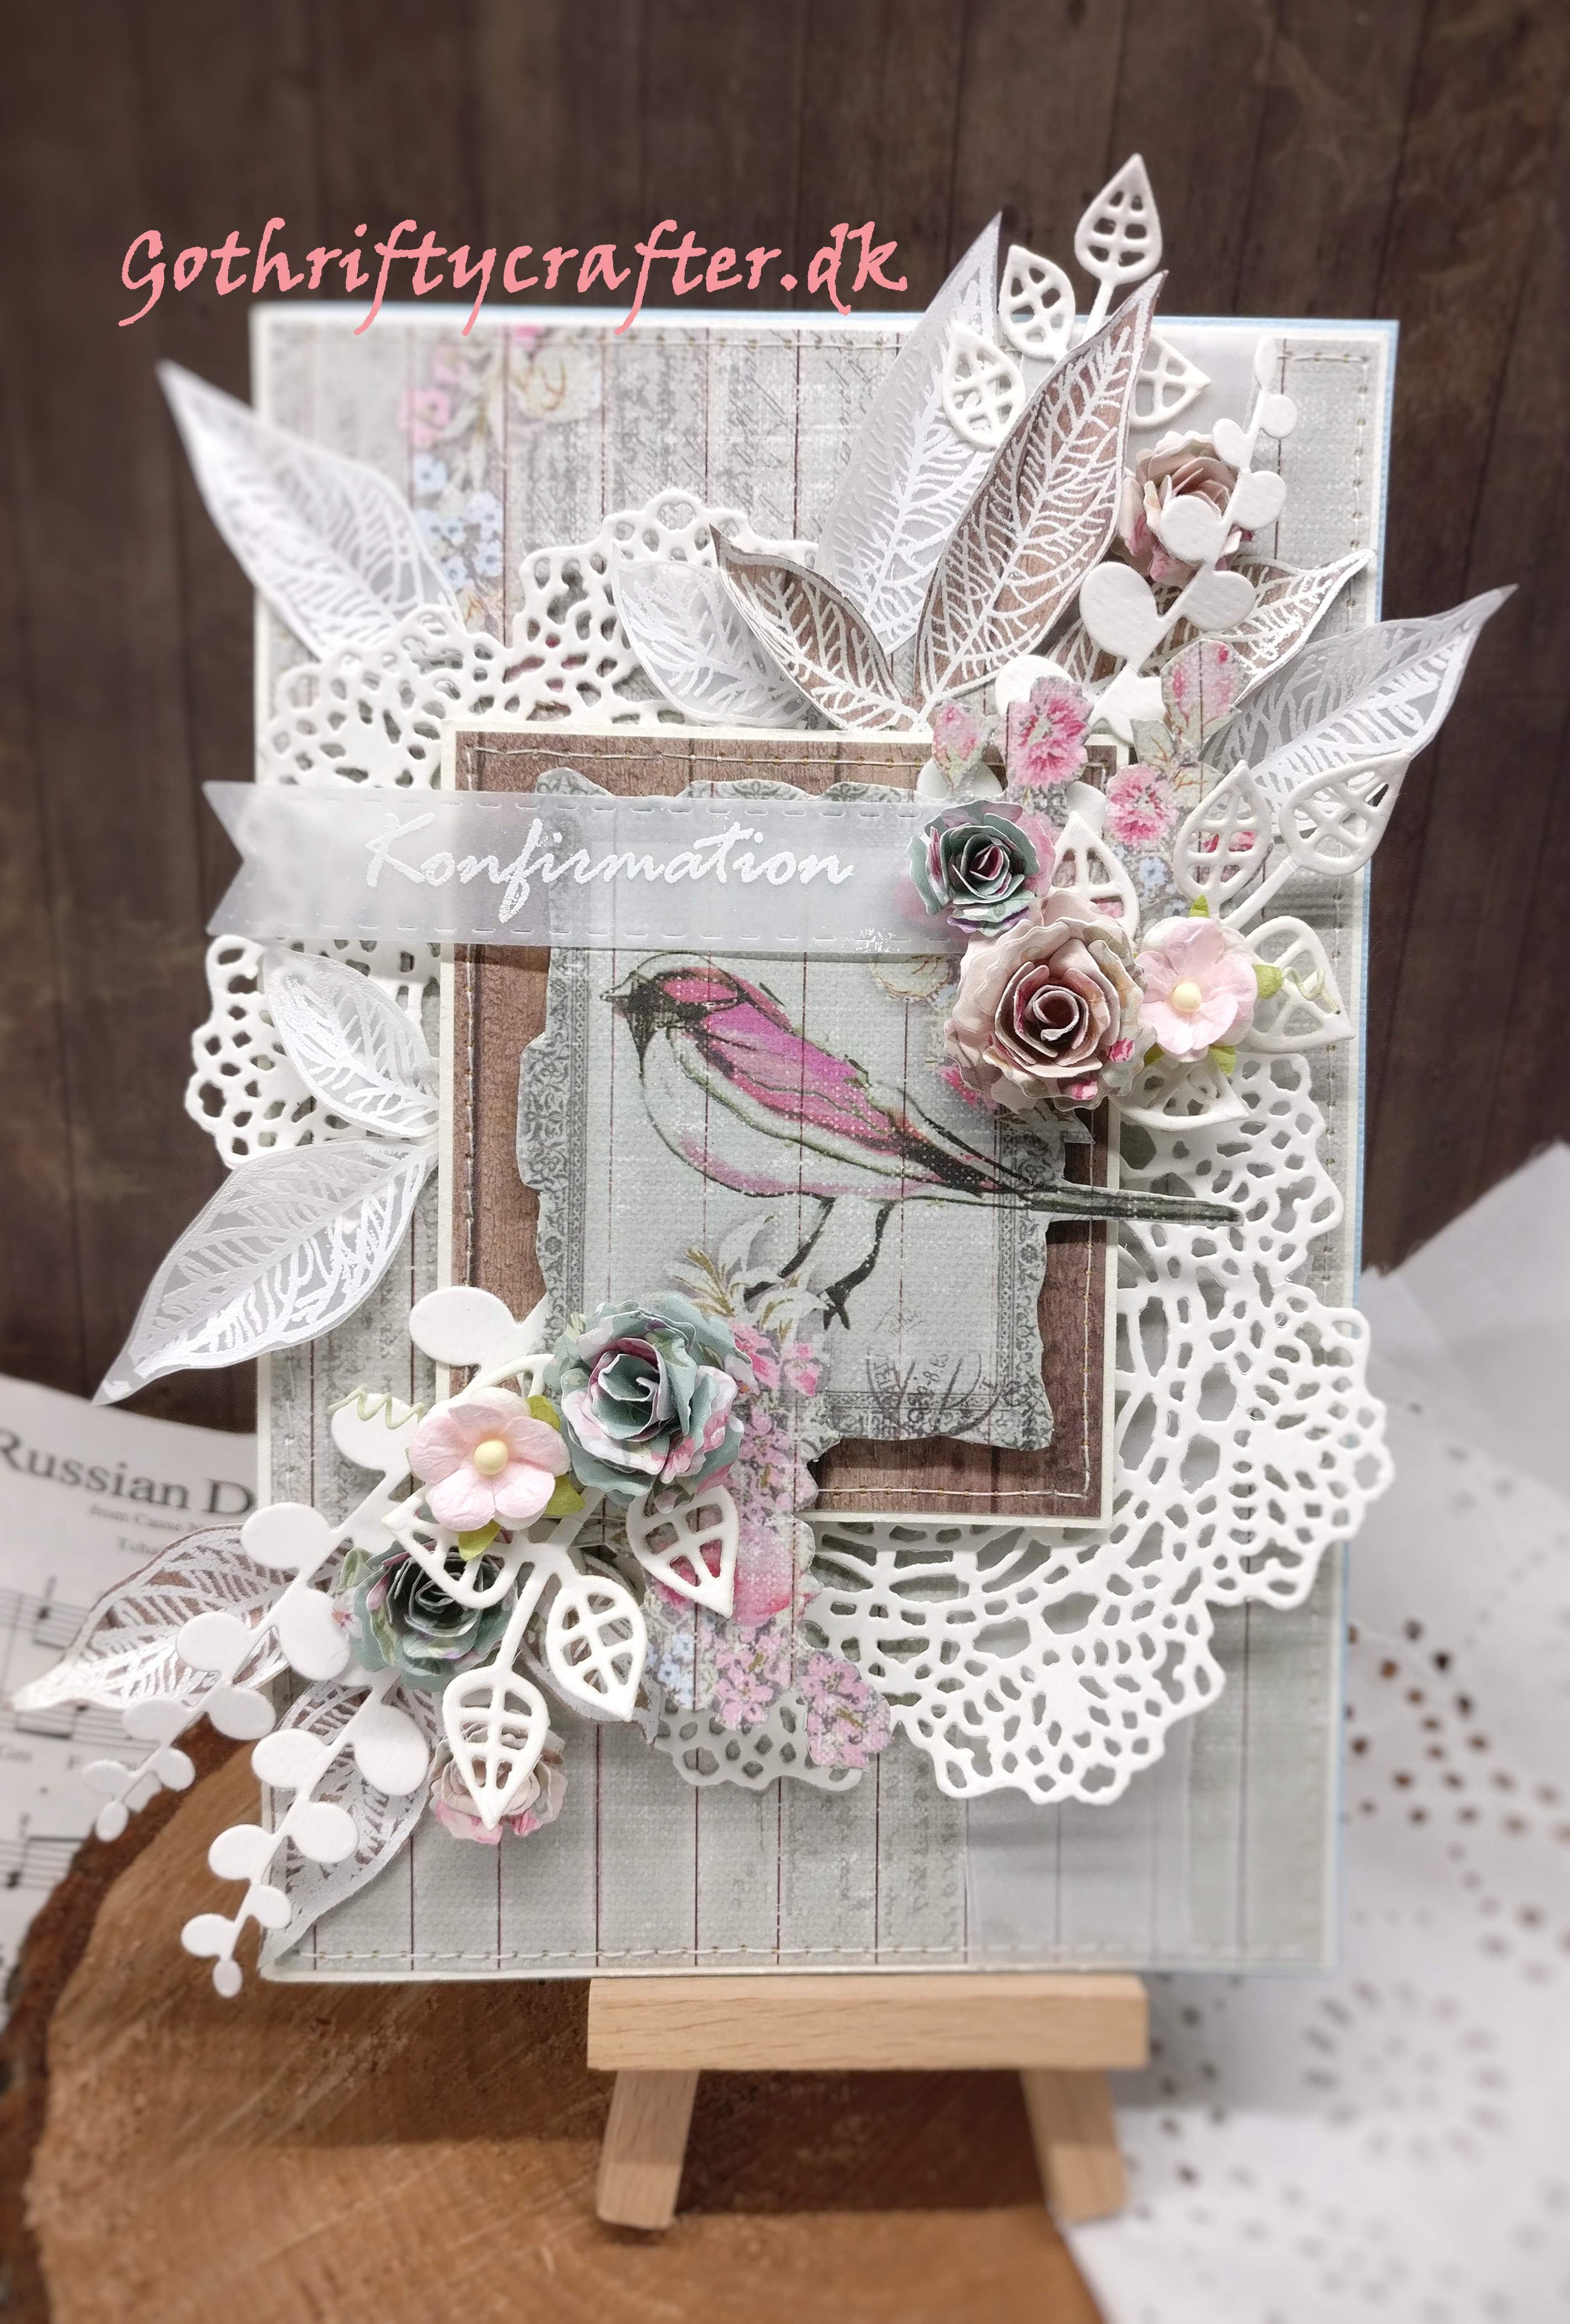 Congratulations card with embossed elements